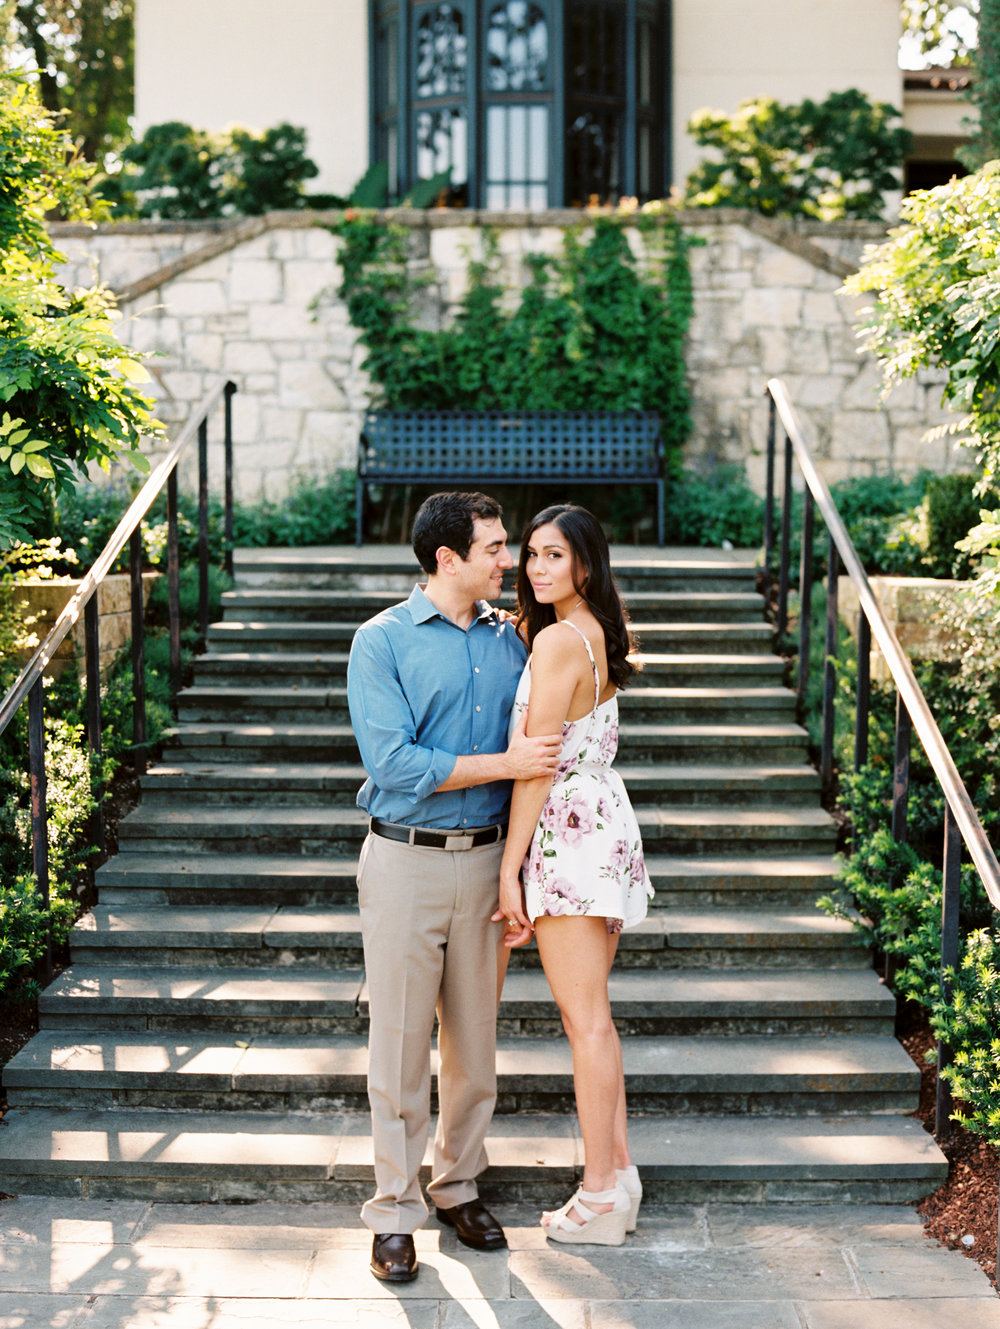 dallas-arboretum-botanical-garden-engagements-ar-photography-lindsey-vance-83.jpg